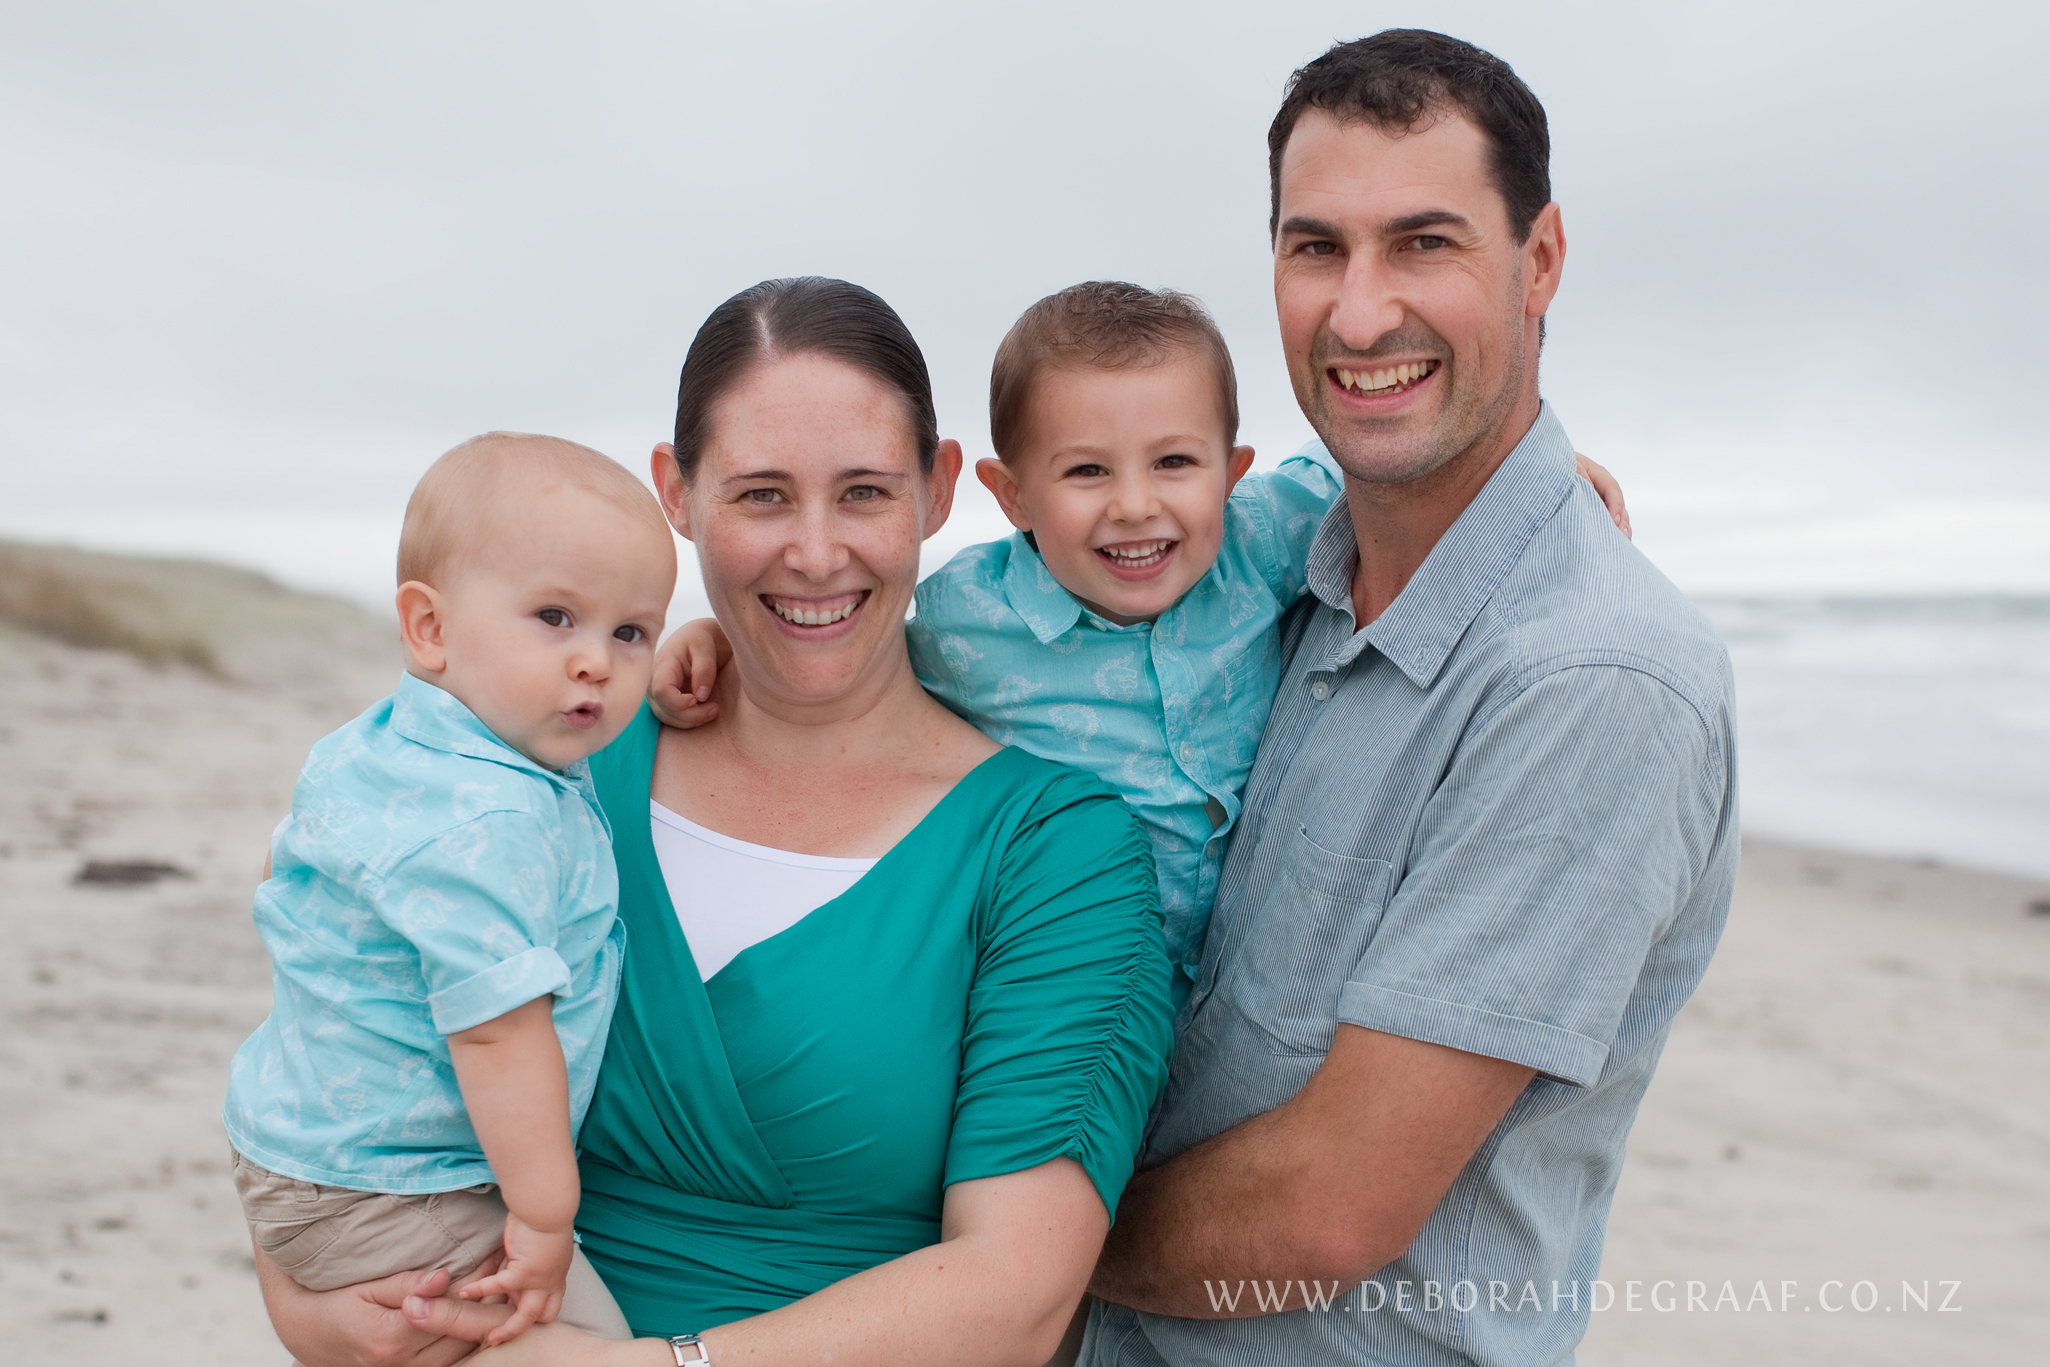 How-to-choose-a-family-photographer.jpg